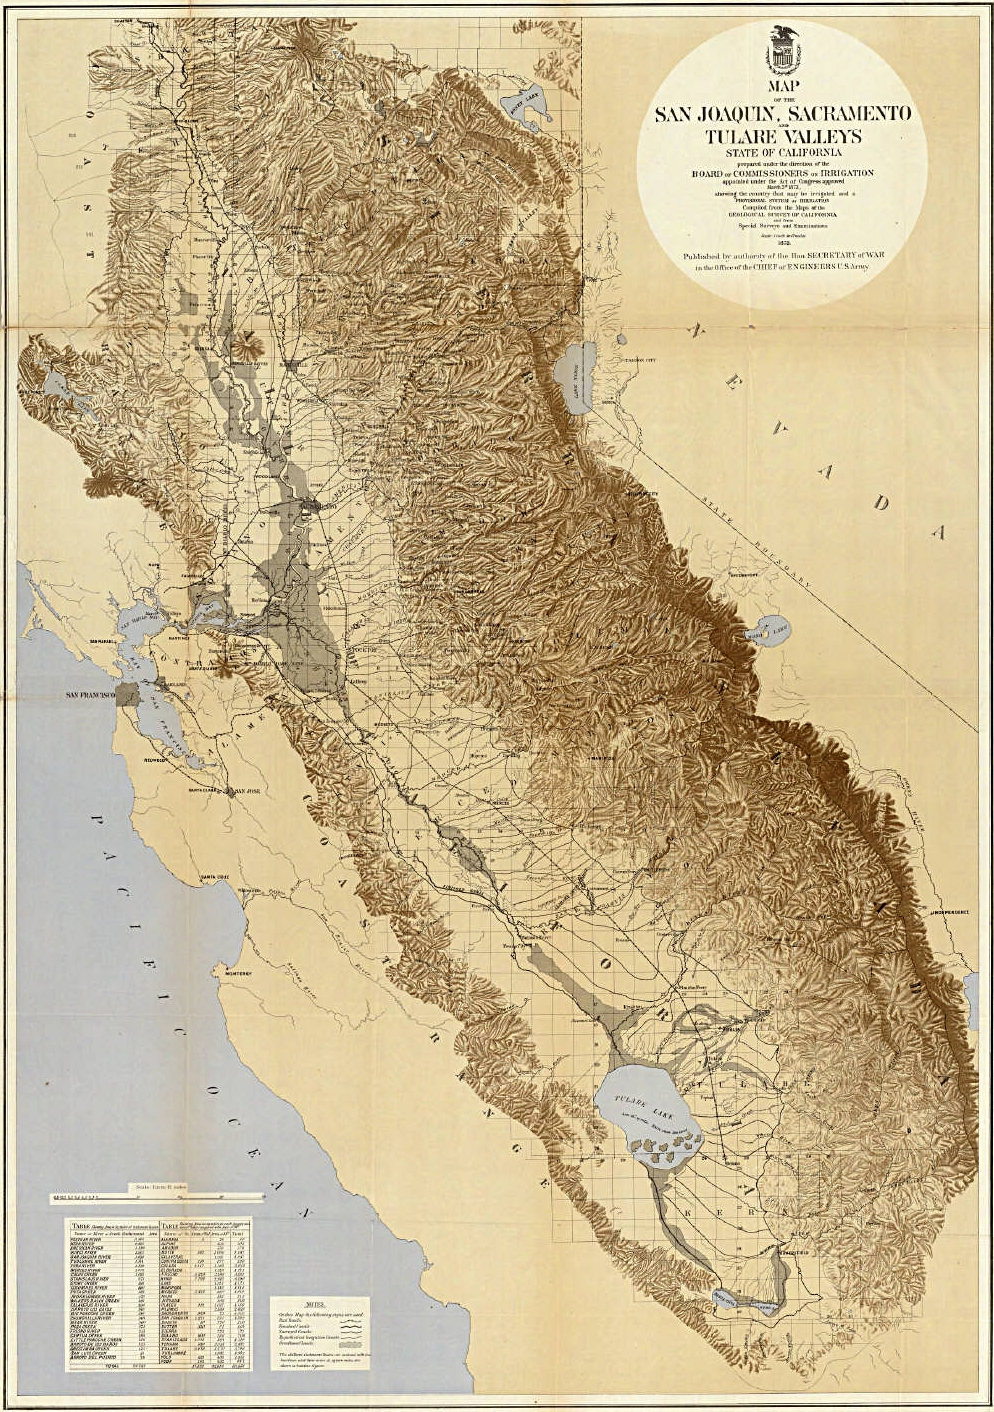 This map from 1873 shows the California Delta in gray east of San Francisco Bay.